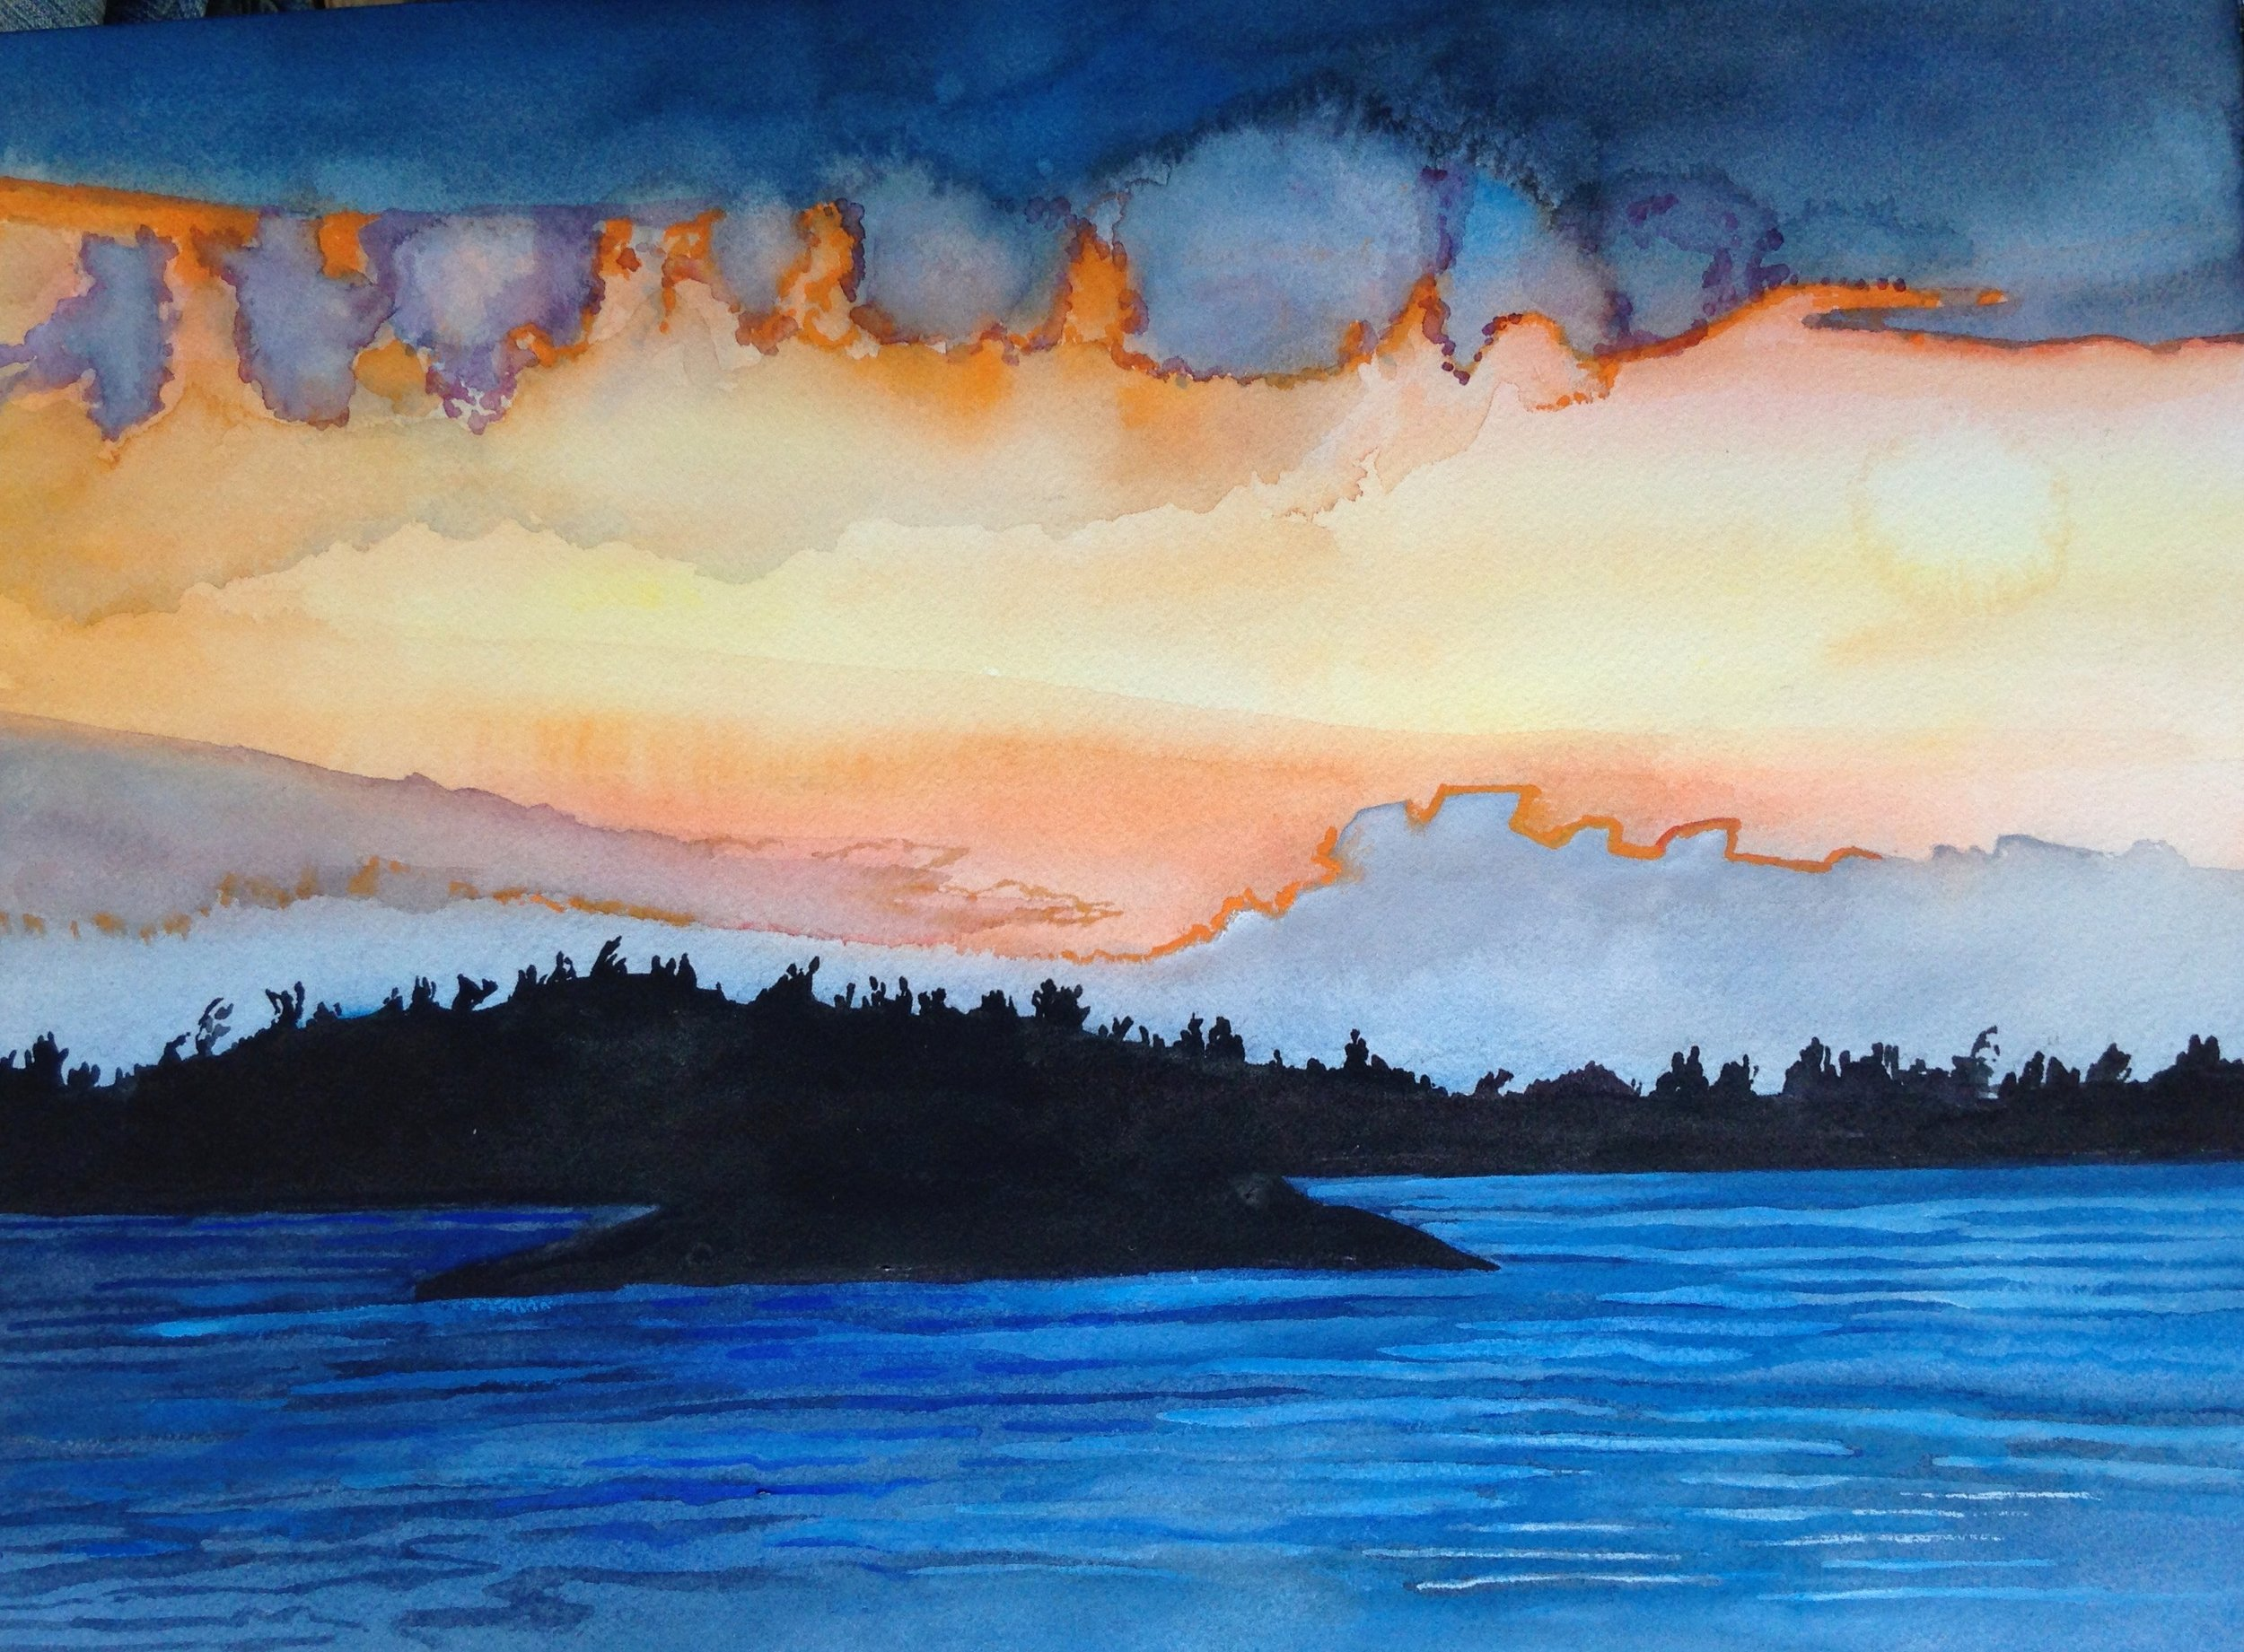 Sunset, Georgian Bay, 12 x 16 inches, 2017